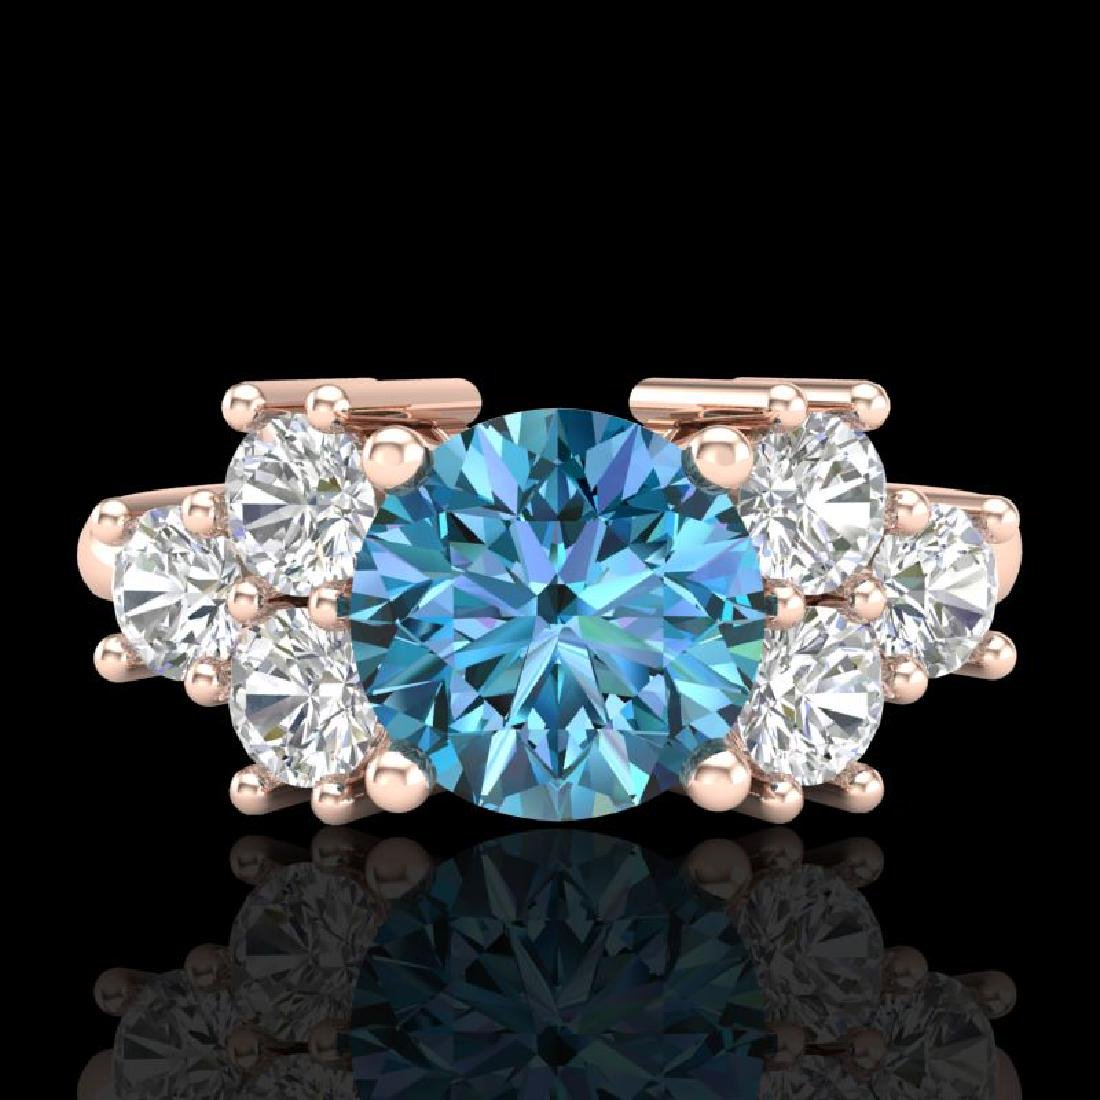 2.1 CTW Intense Blue Diamond Solitaire Engagement - 2